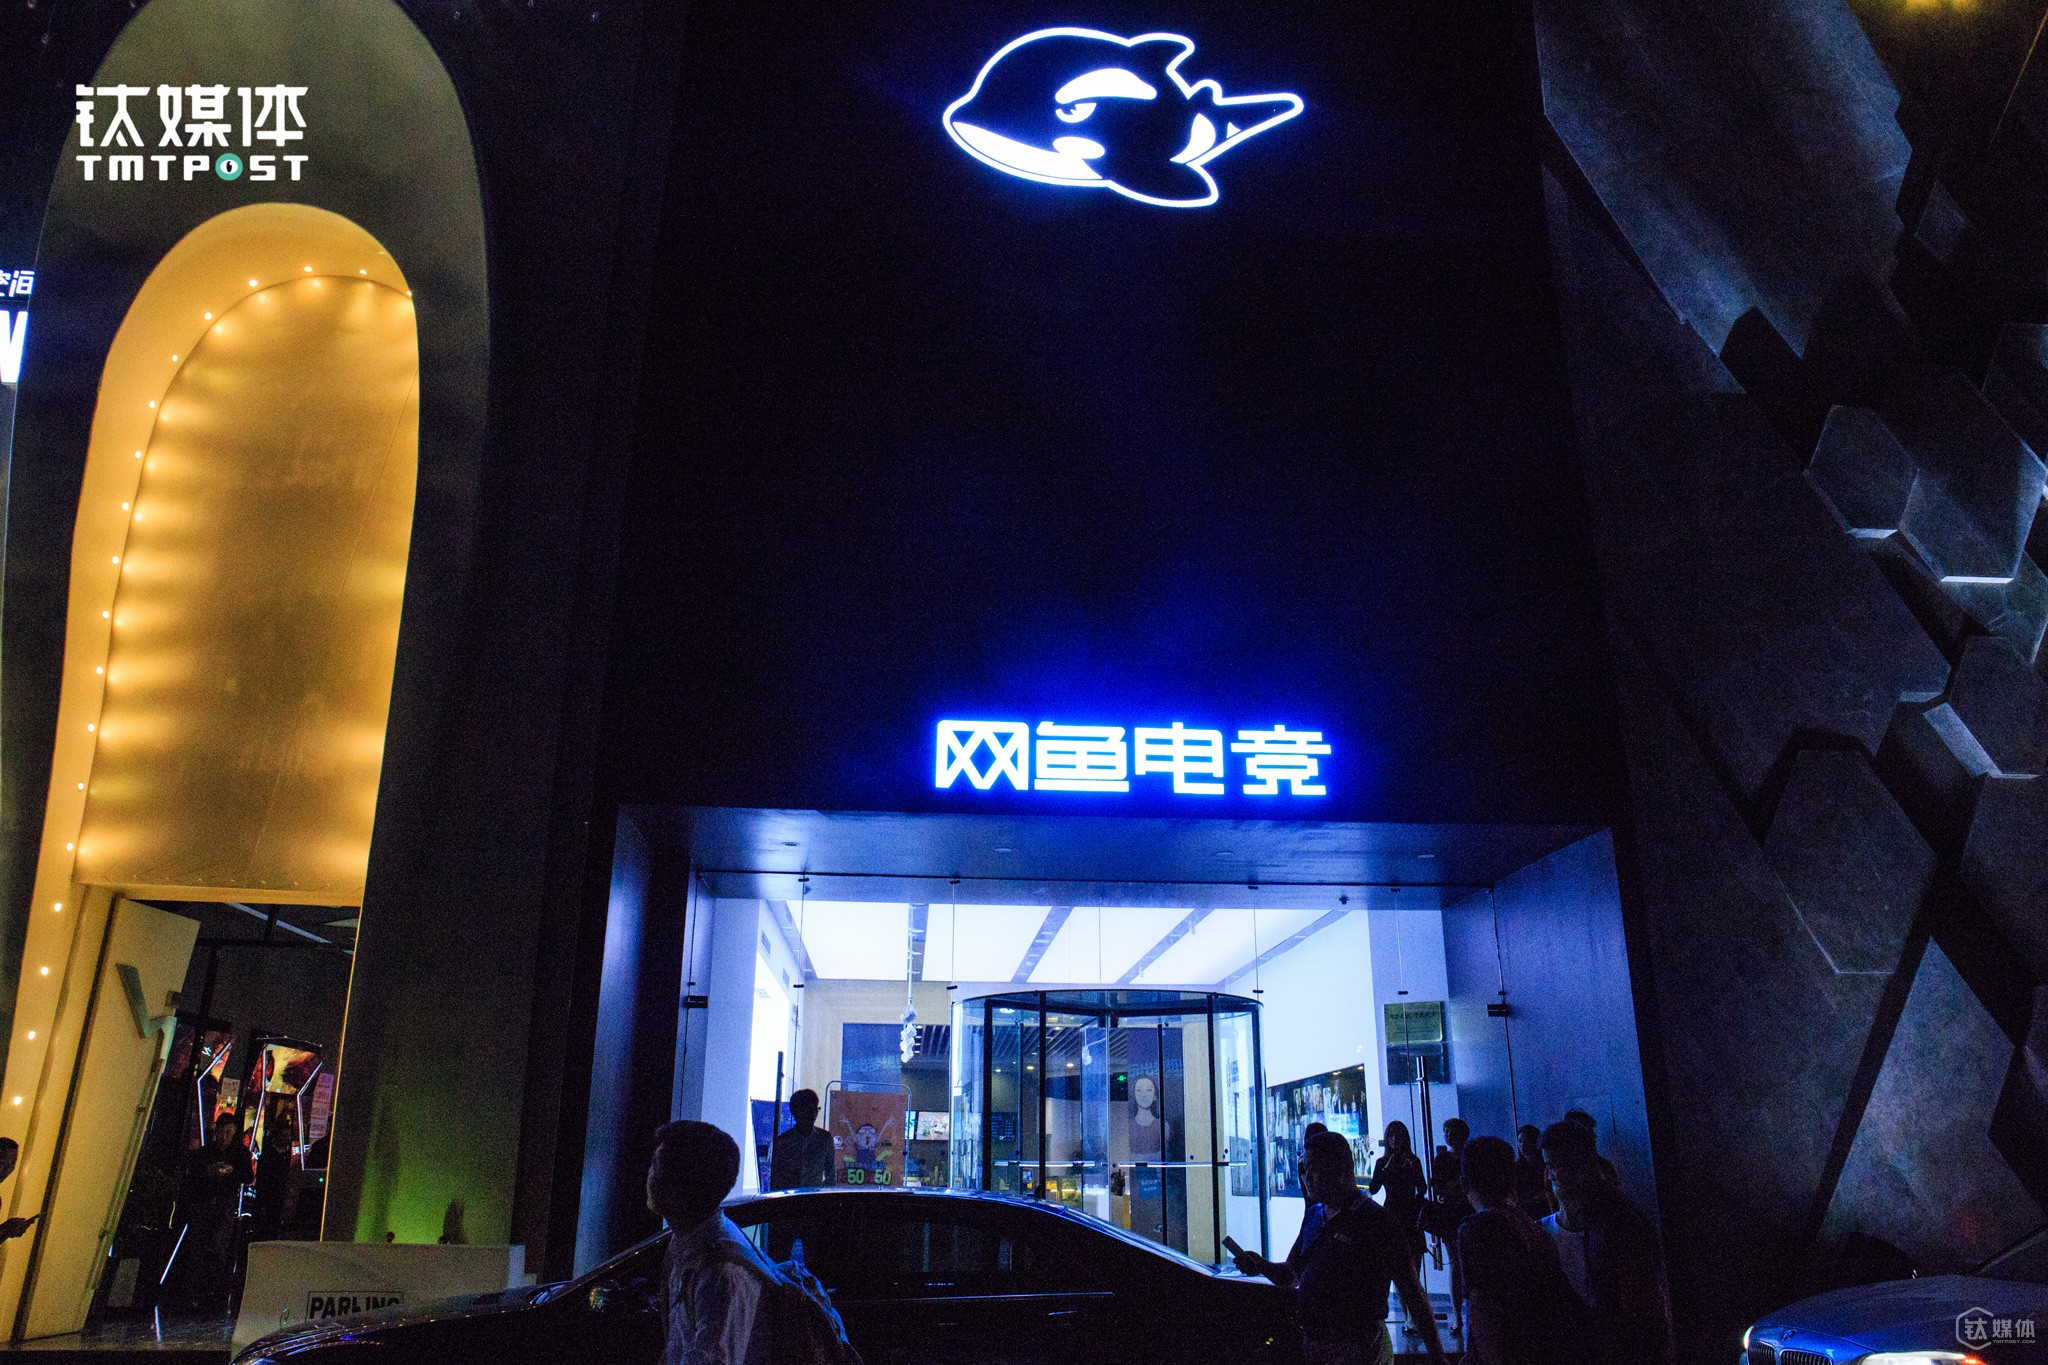 With the rise of e-sports in China, an increasing number of e-sports players emerged, which also led to a new business model, the combination of internet cafés and e-sports. WYWK opened the first e-sports bar & internet café near Beijing Workers